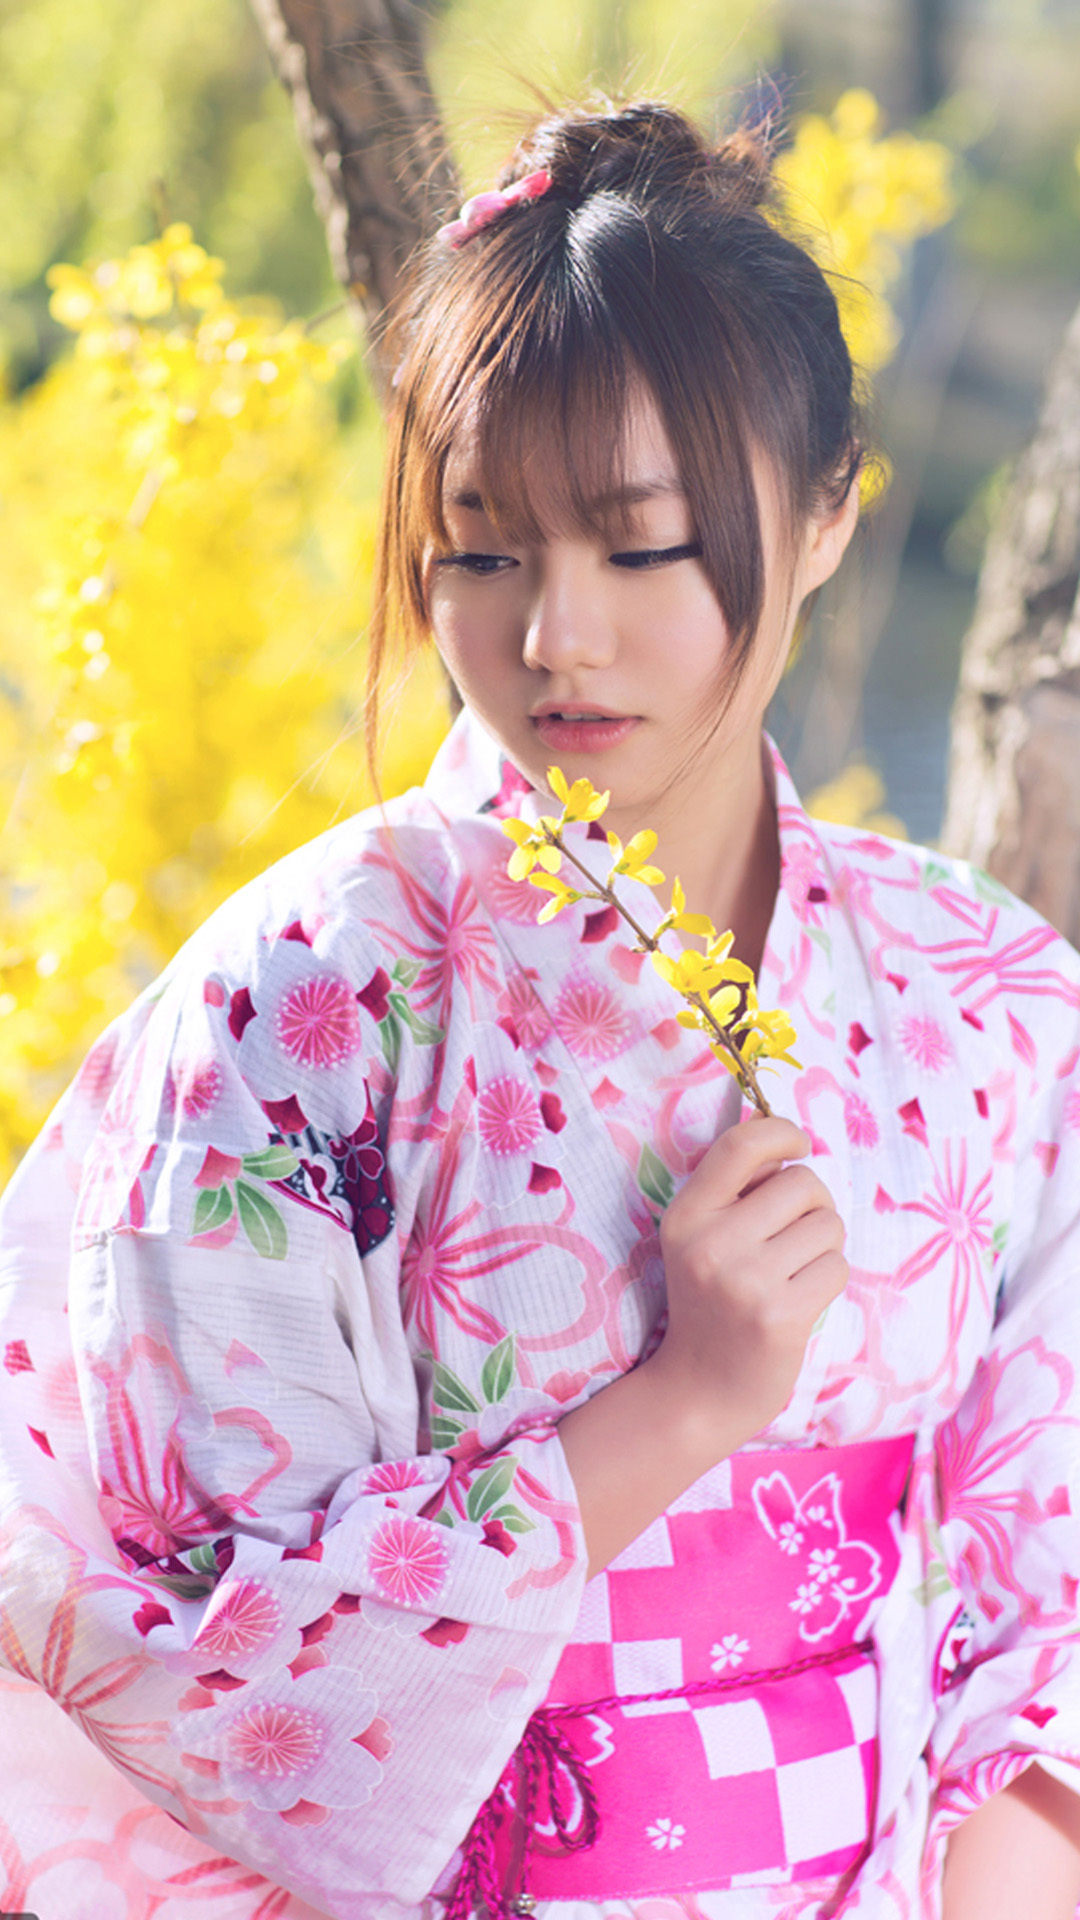 japanese wallpaper iphone 6 plus collections